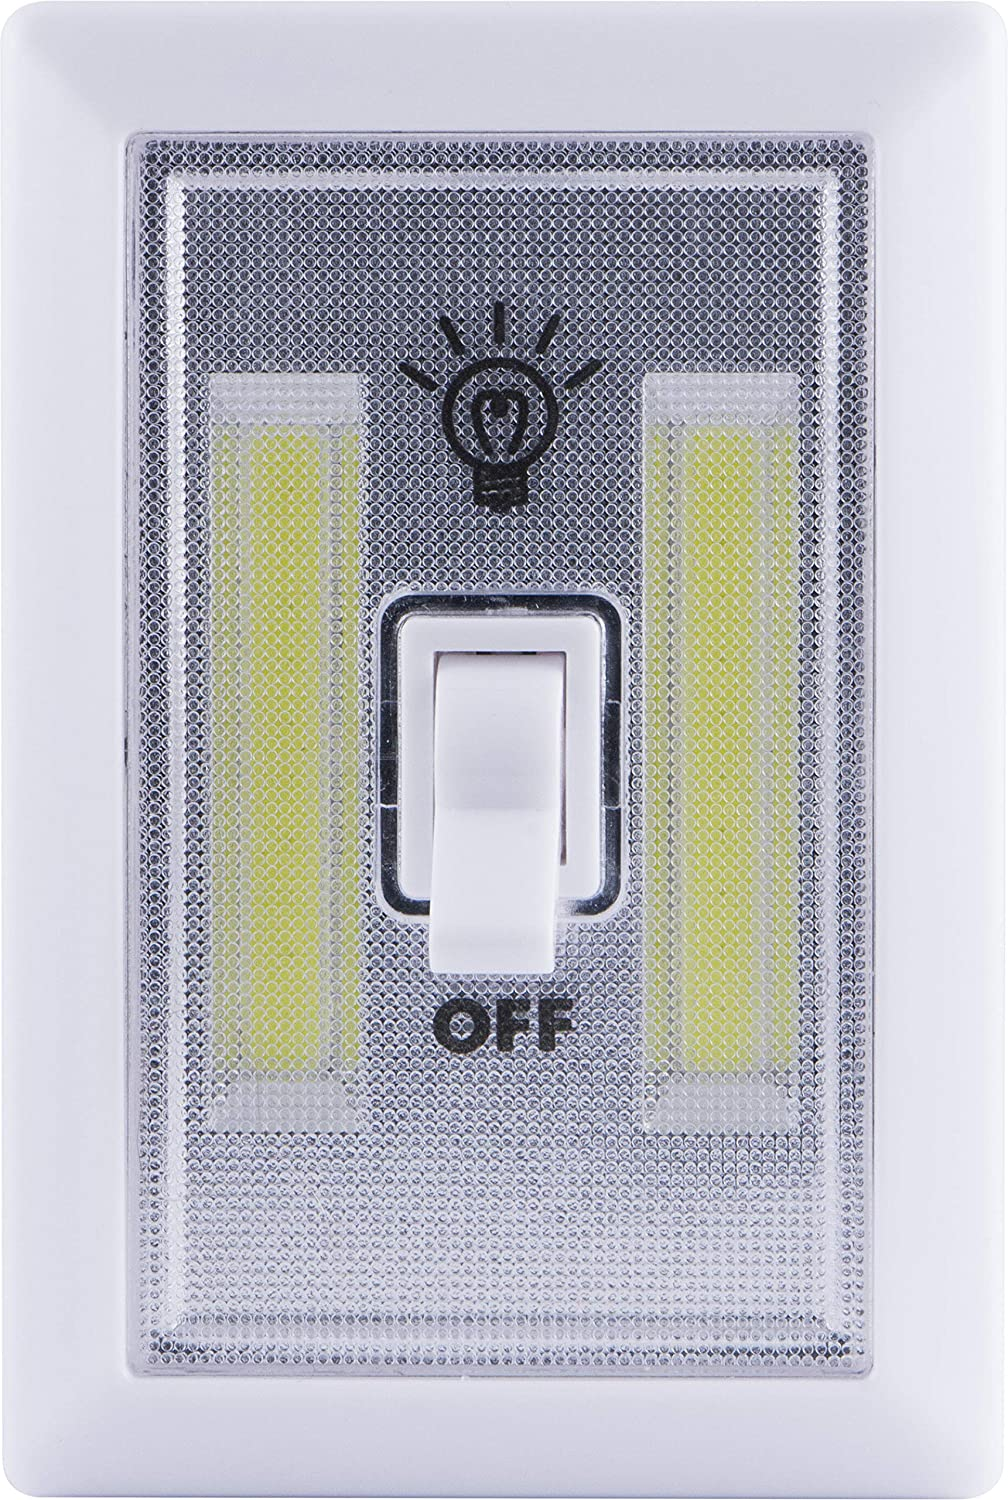 Lights By Night Wireless LED Light Switch, Battery Operated, 100 Lumens, Manual On/Off Toggle Switch, Portable Light Switch, Wireless, Easy to Use Stick-On LED Lights, No Wiring Needed, White, 39641